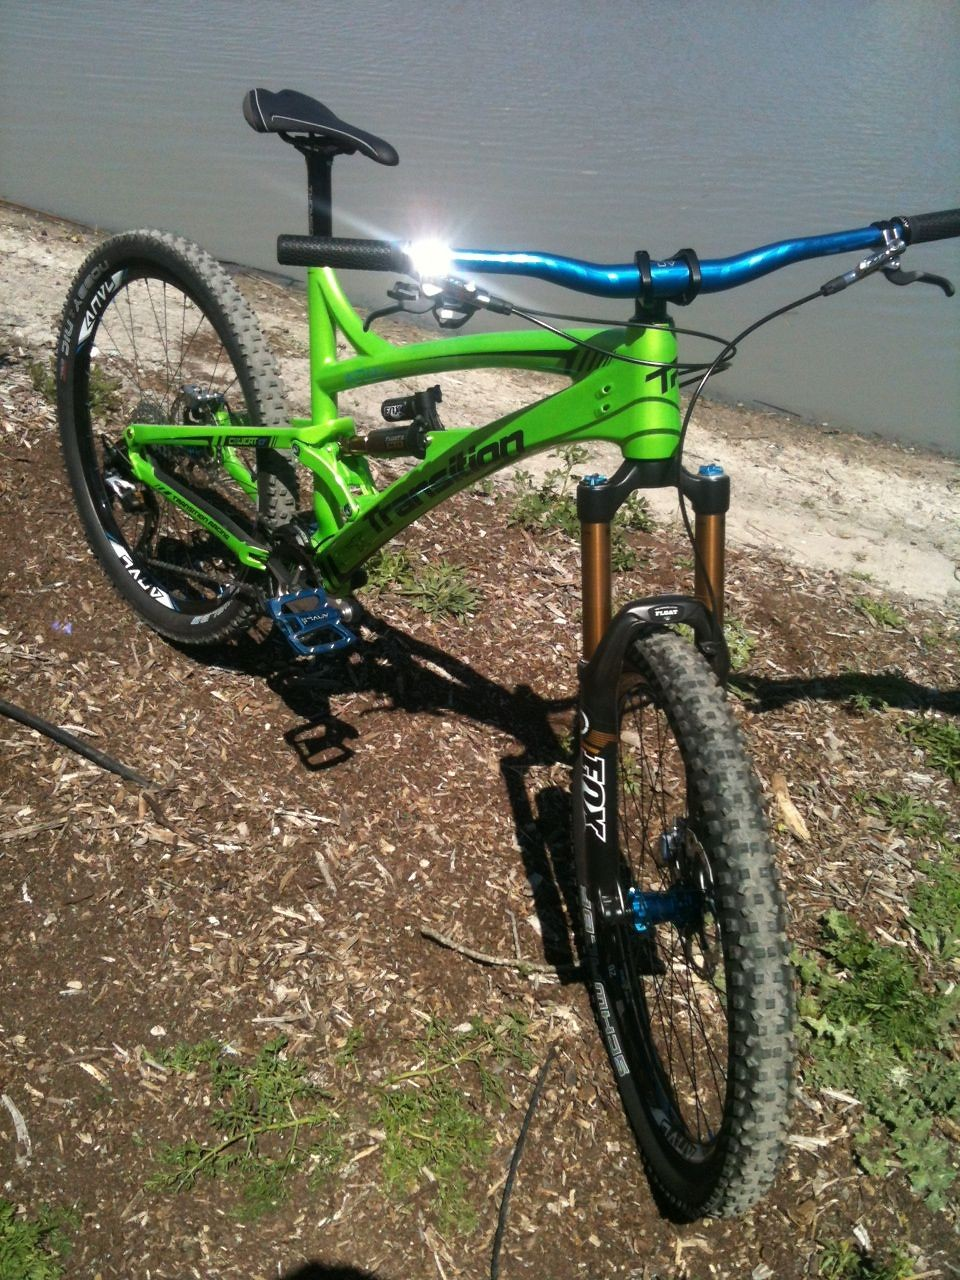 ANVL on bike - iceman2058 - Mountain Biking Pictures - Vital MTB